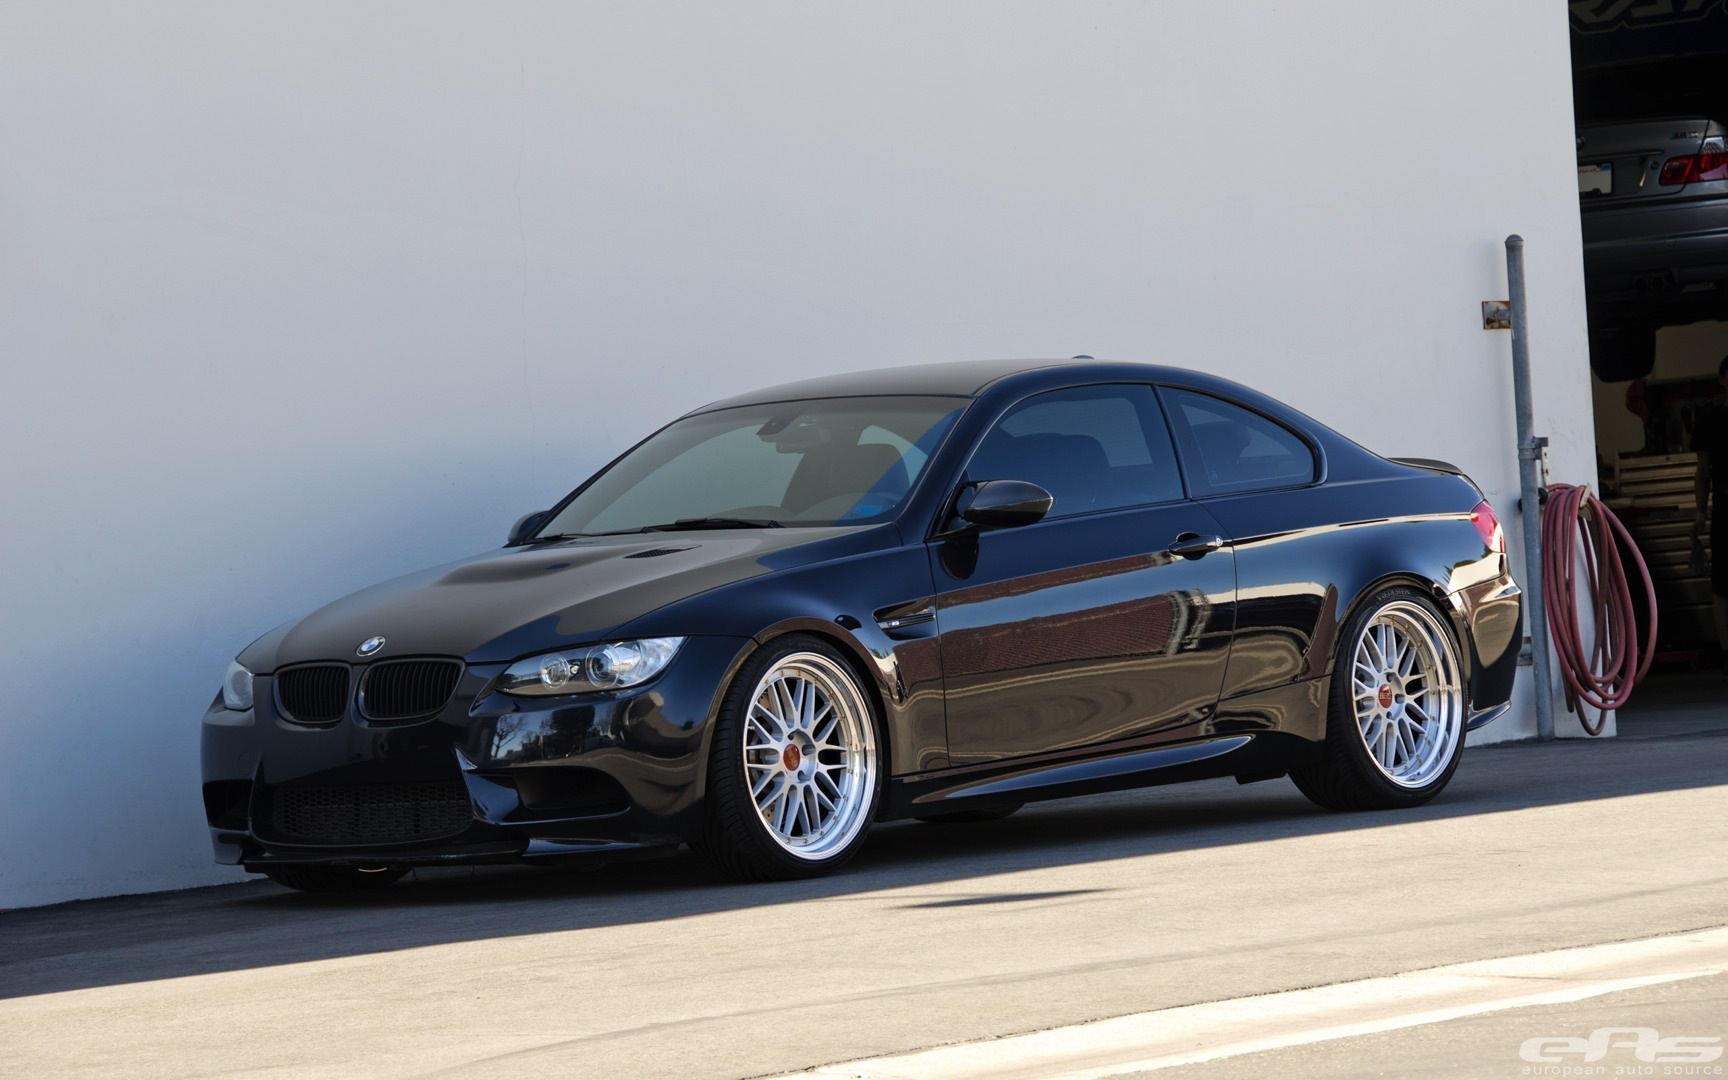 Jerez Black Bmw E92 M3 Gets Serious Upgrades Autoevolution